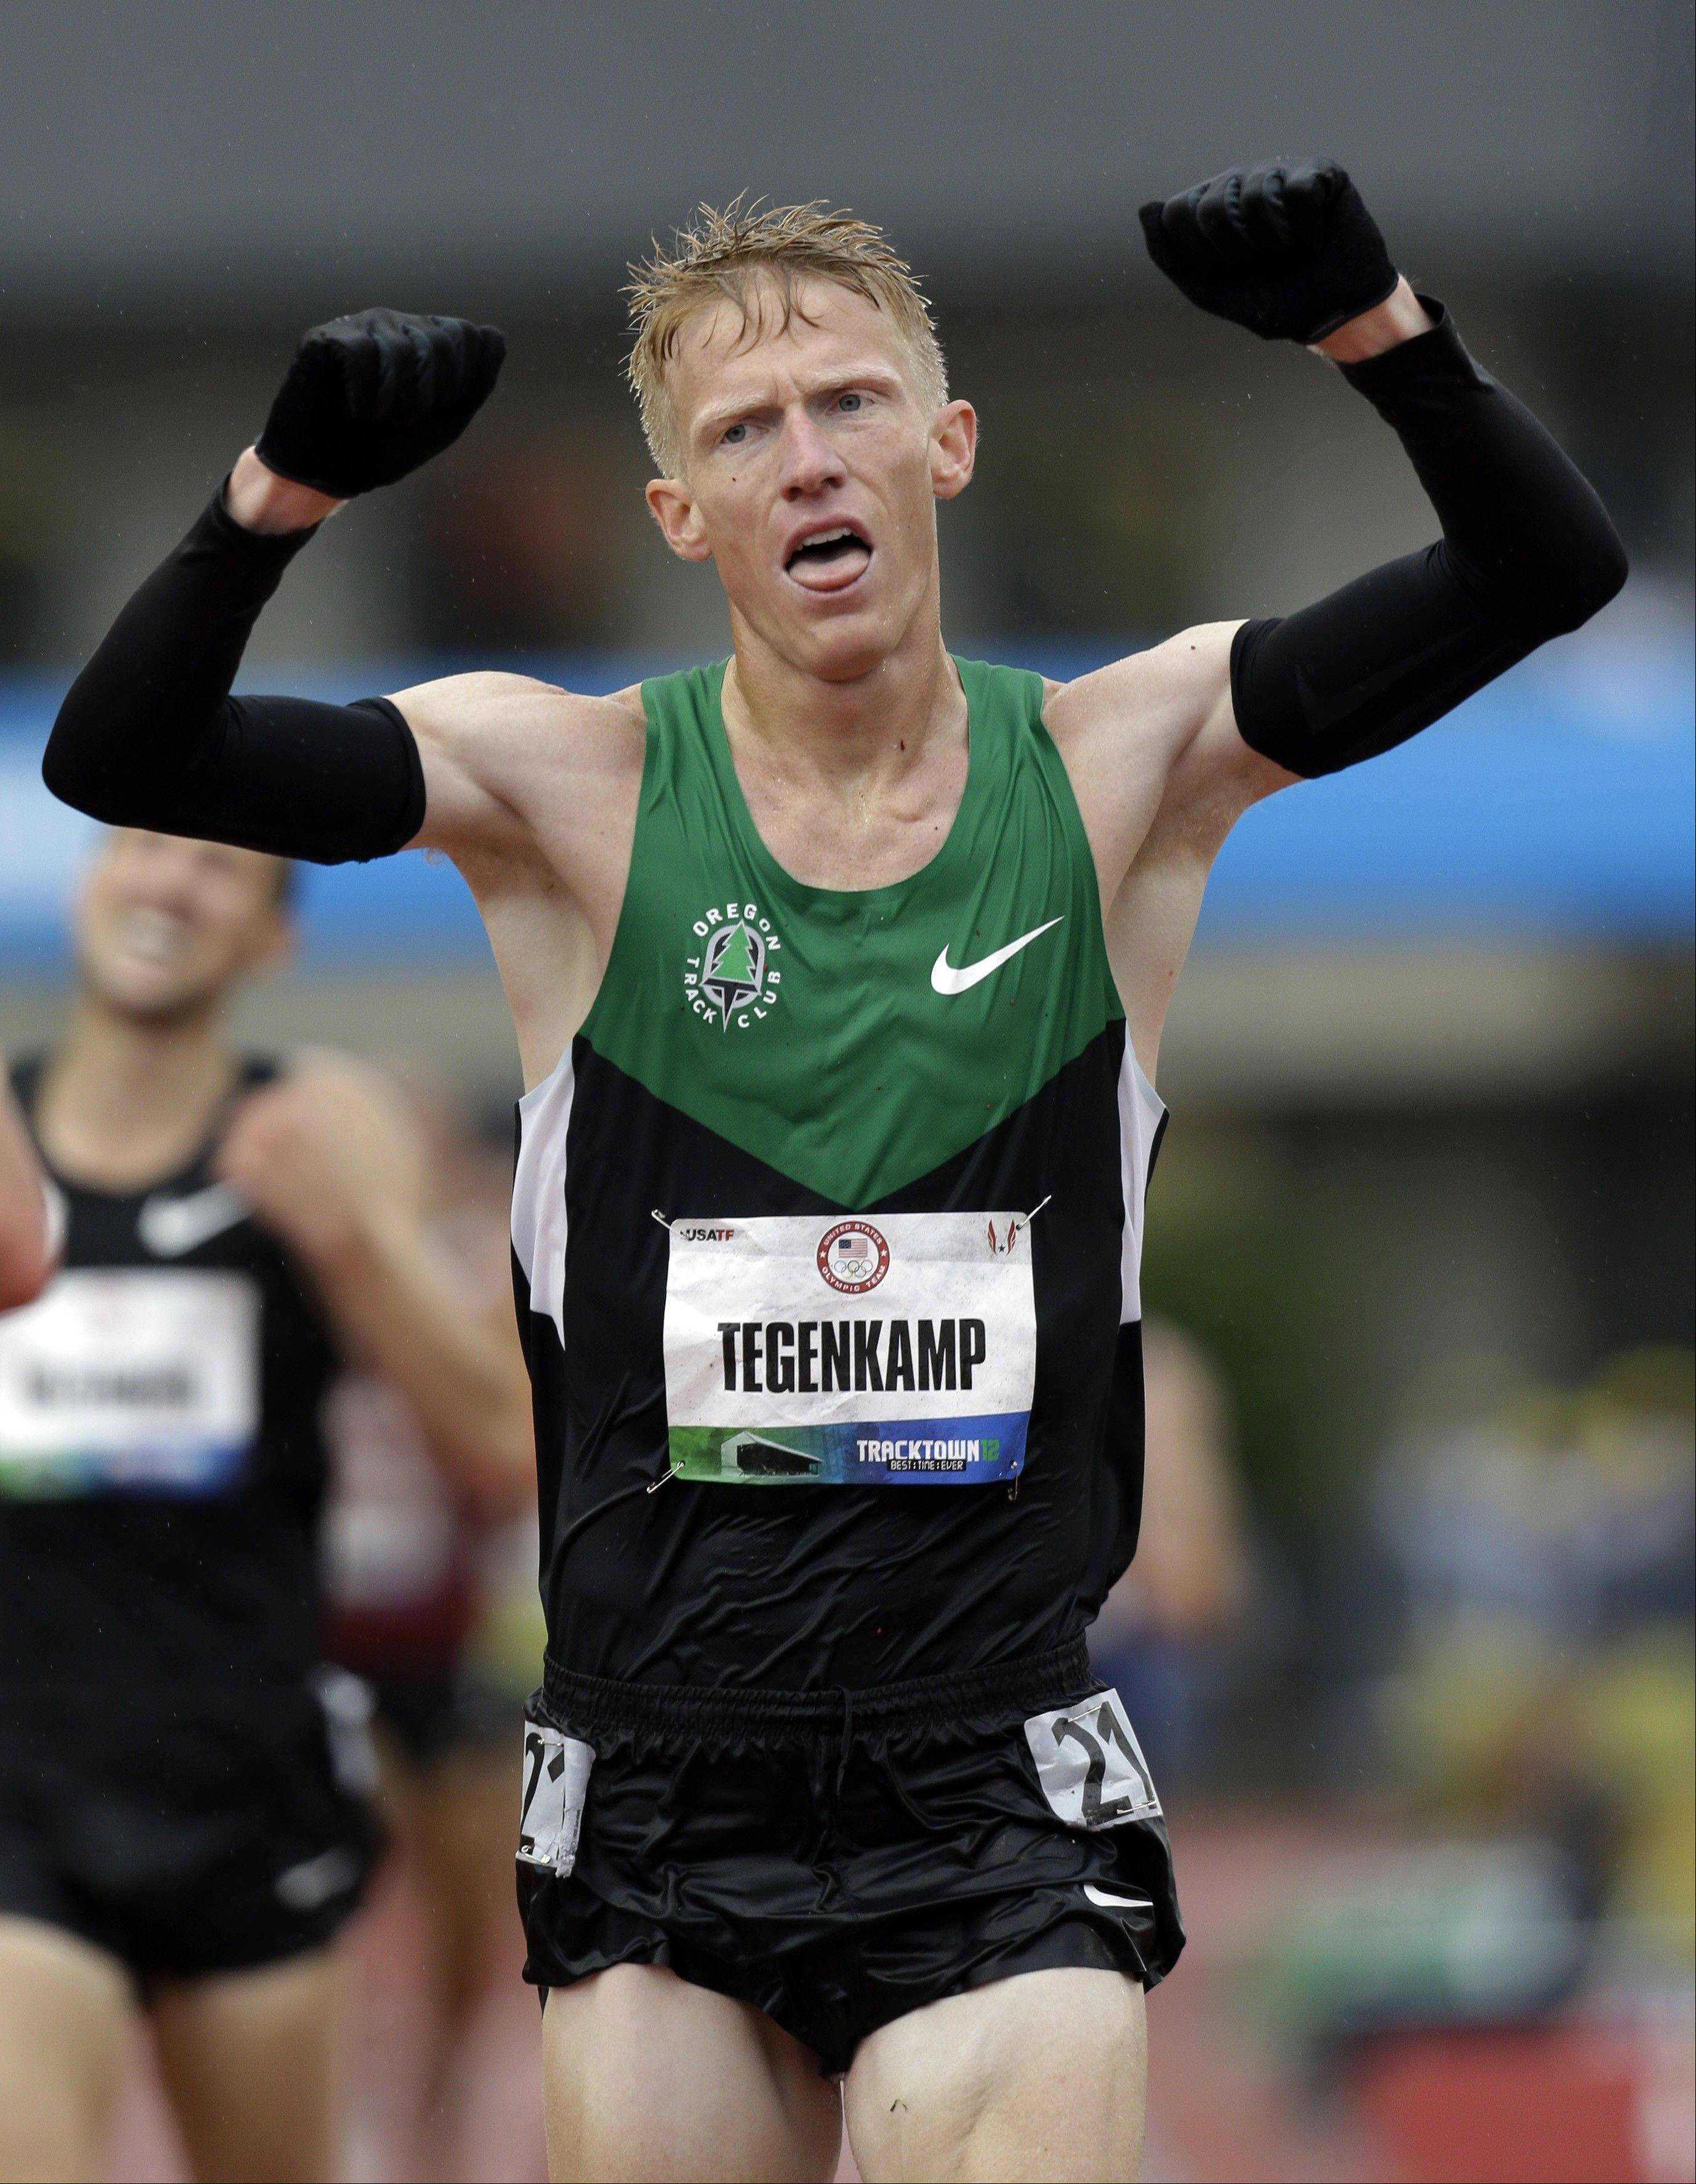 Olympian Matt Tegenkamp will race in the 2013 Chicago Marathon, race officials announced Thursday.